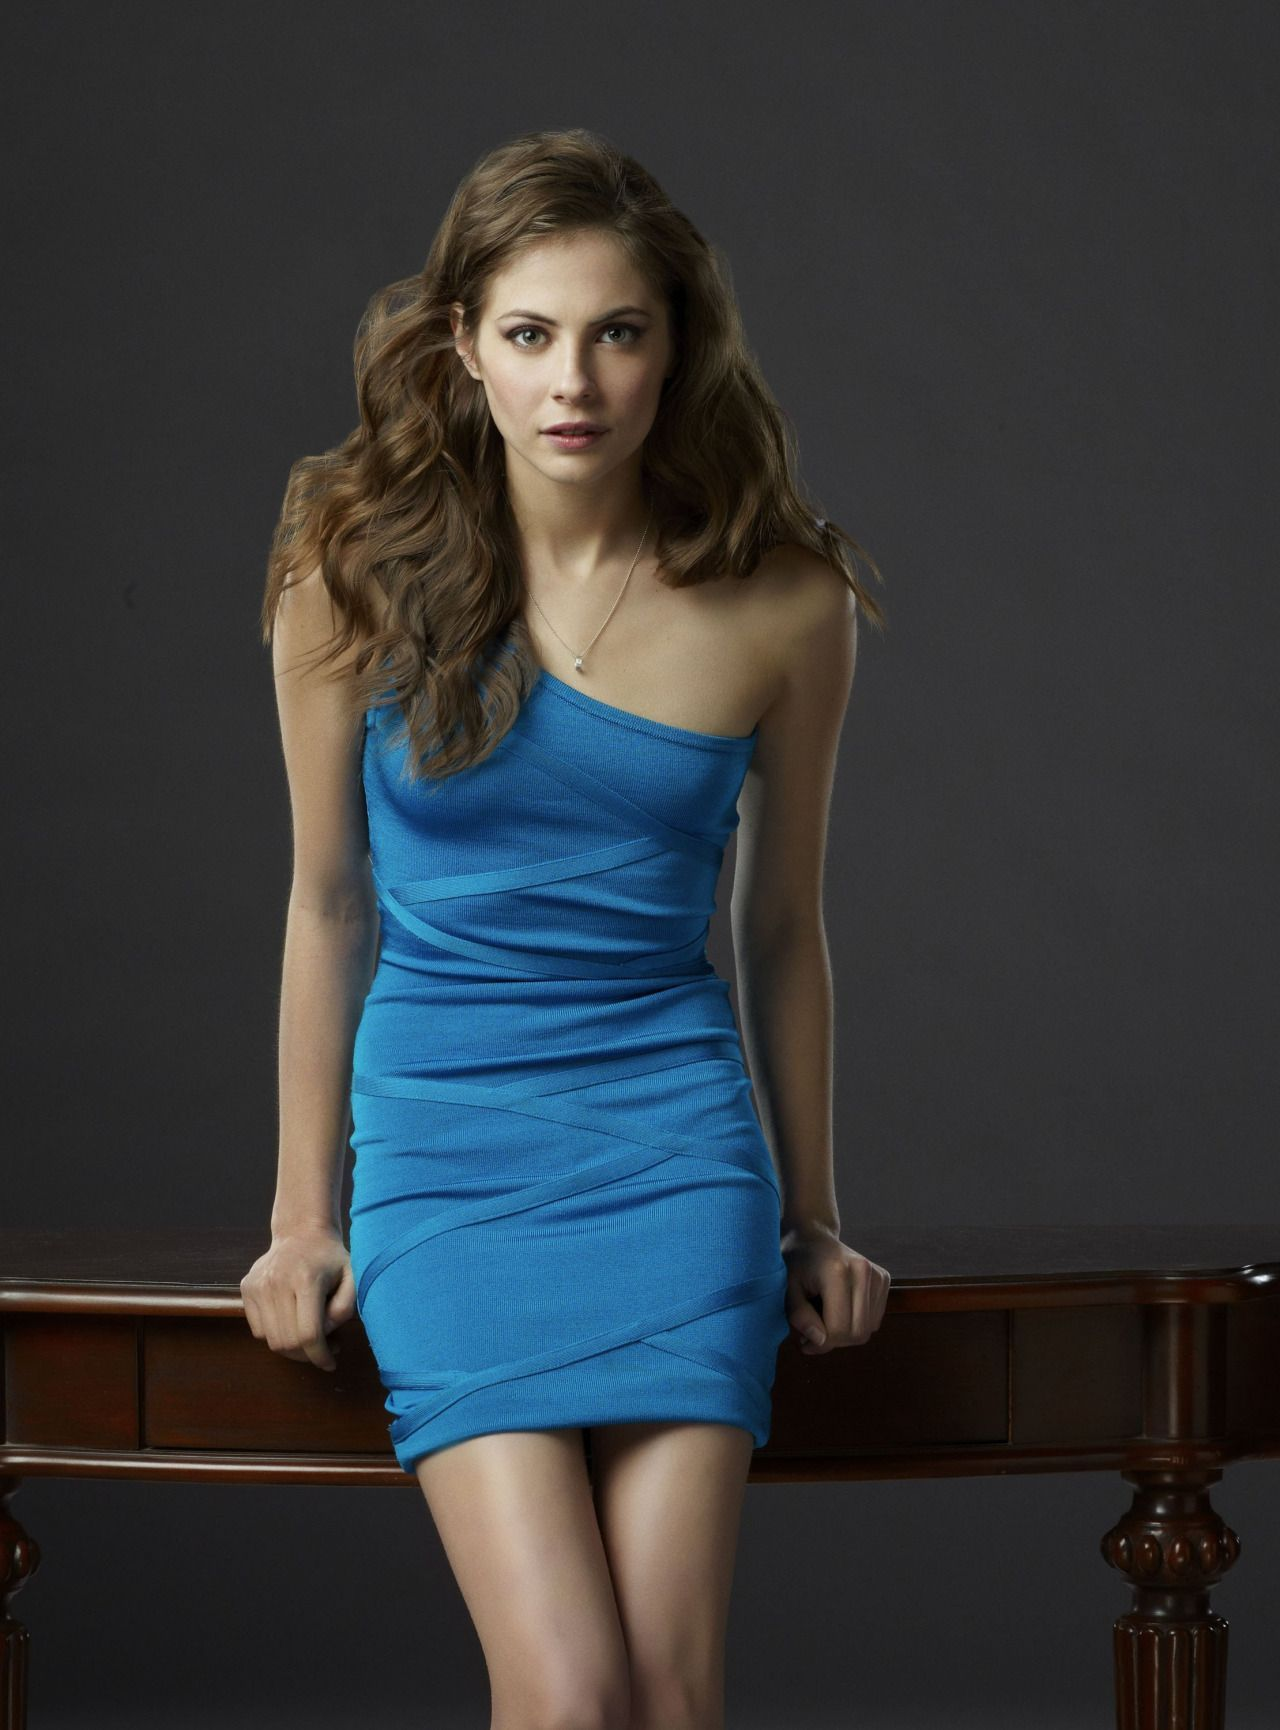 willa holland blue dress